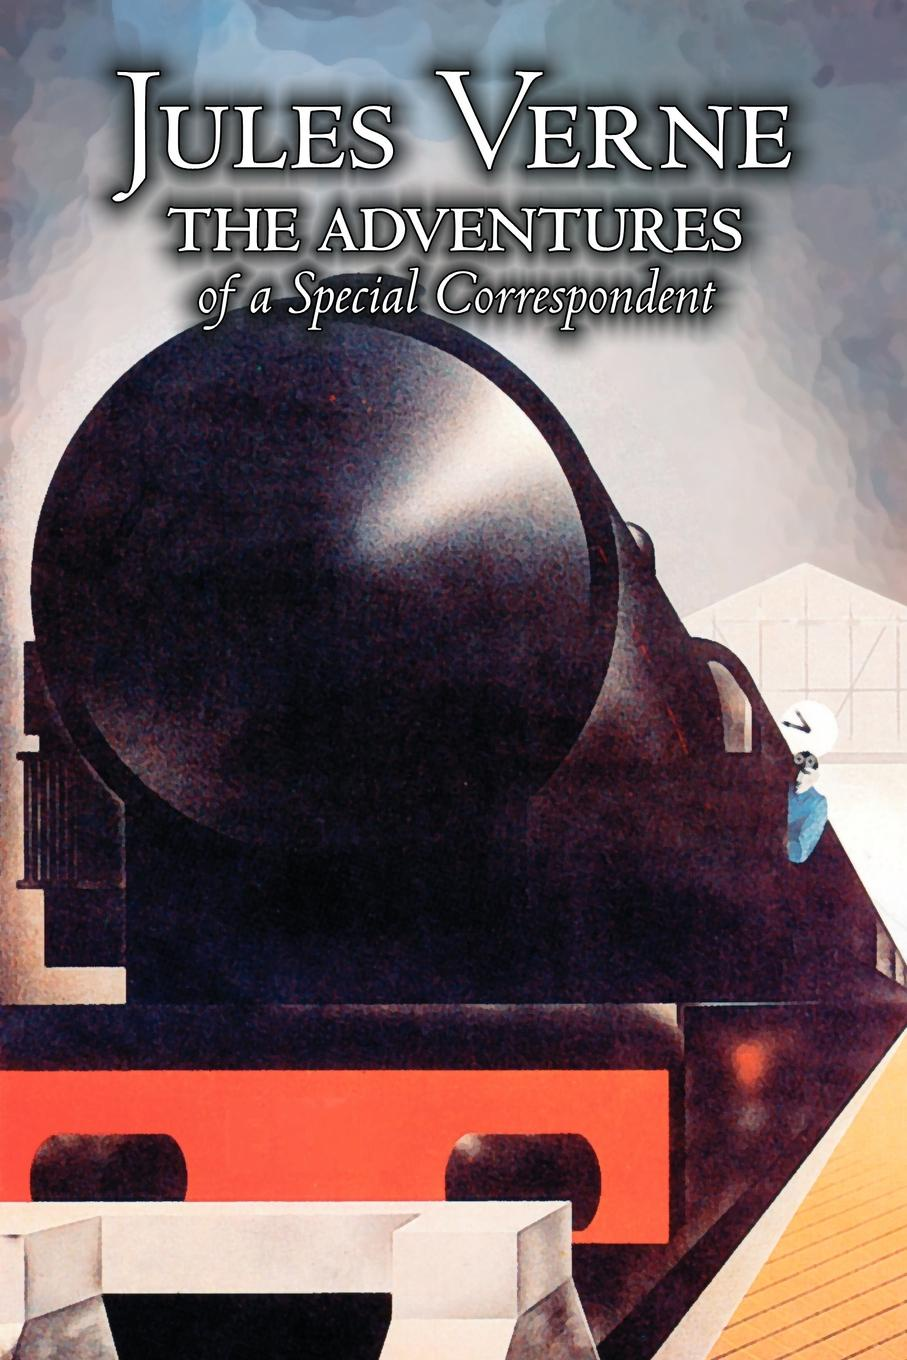 Jules Verne The Adventures of a Special Correspondent by Jules Verne, Fiction, Fantasy & Magic